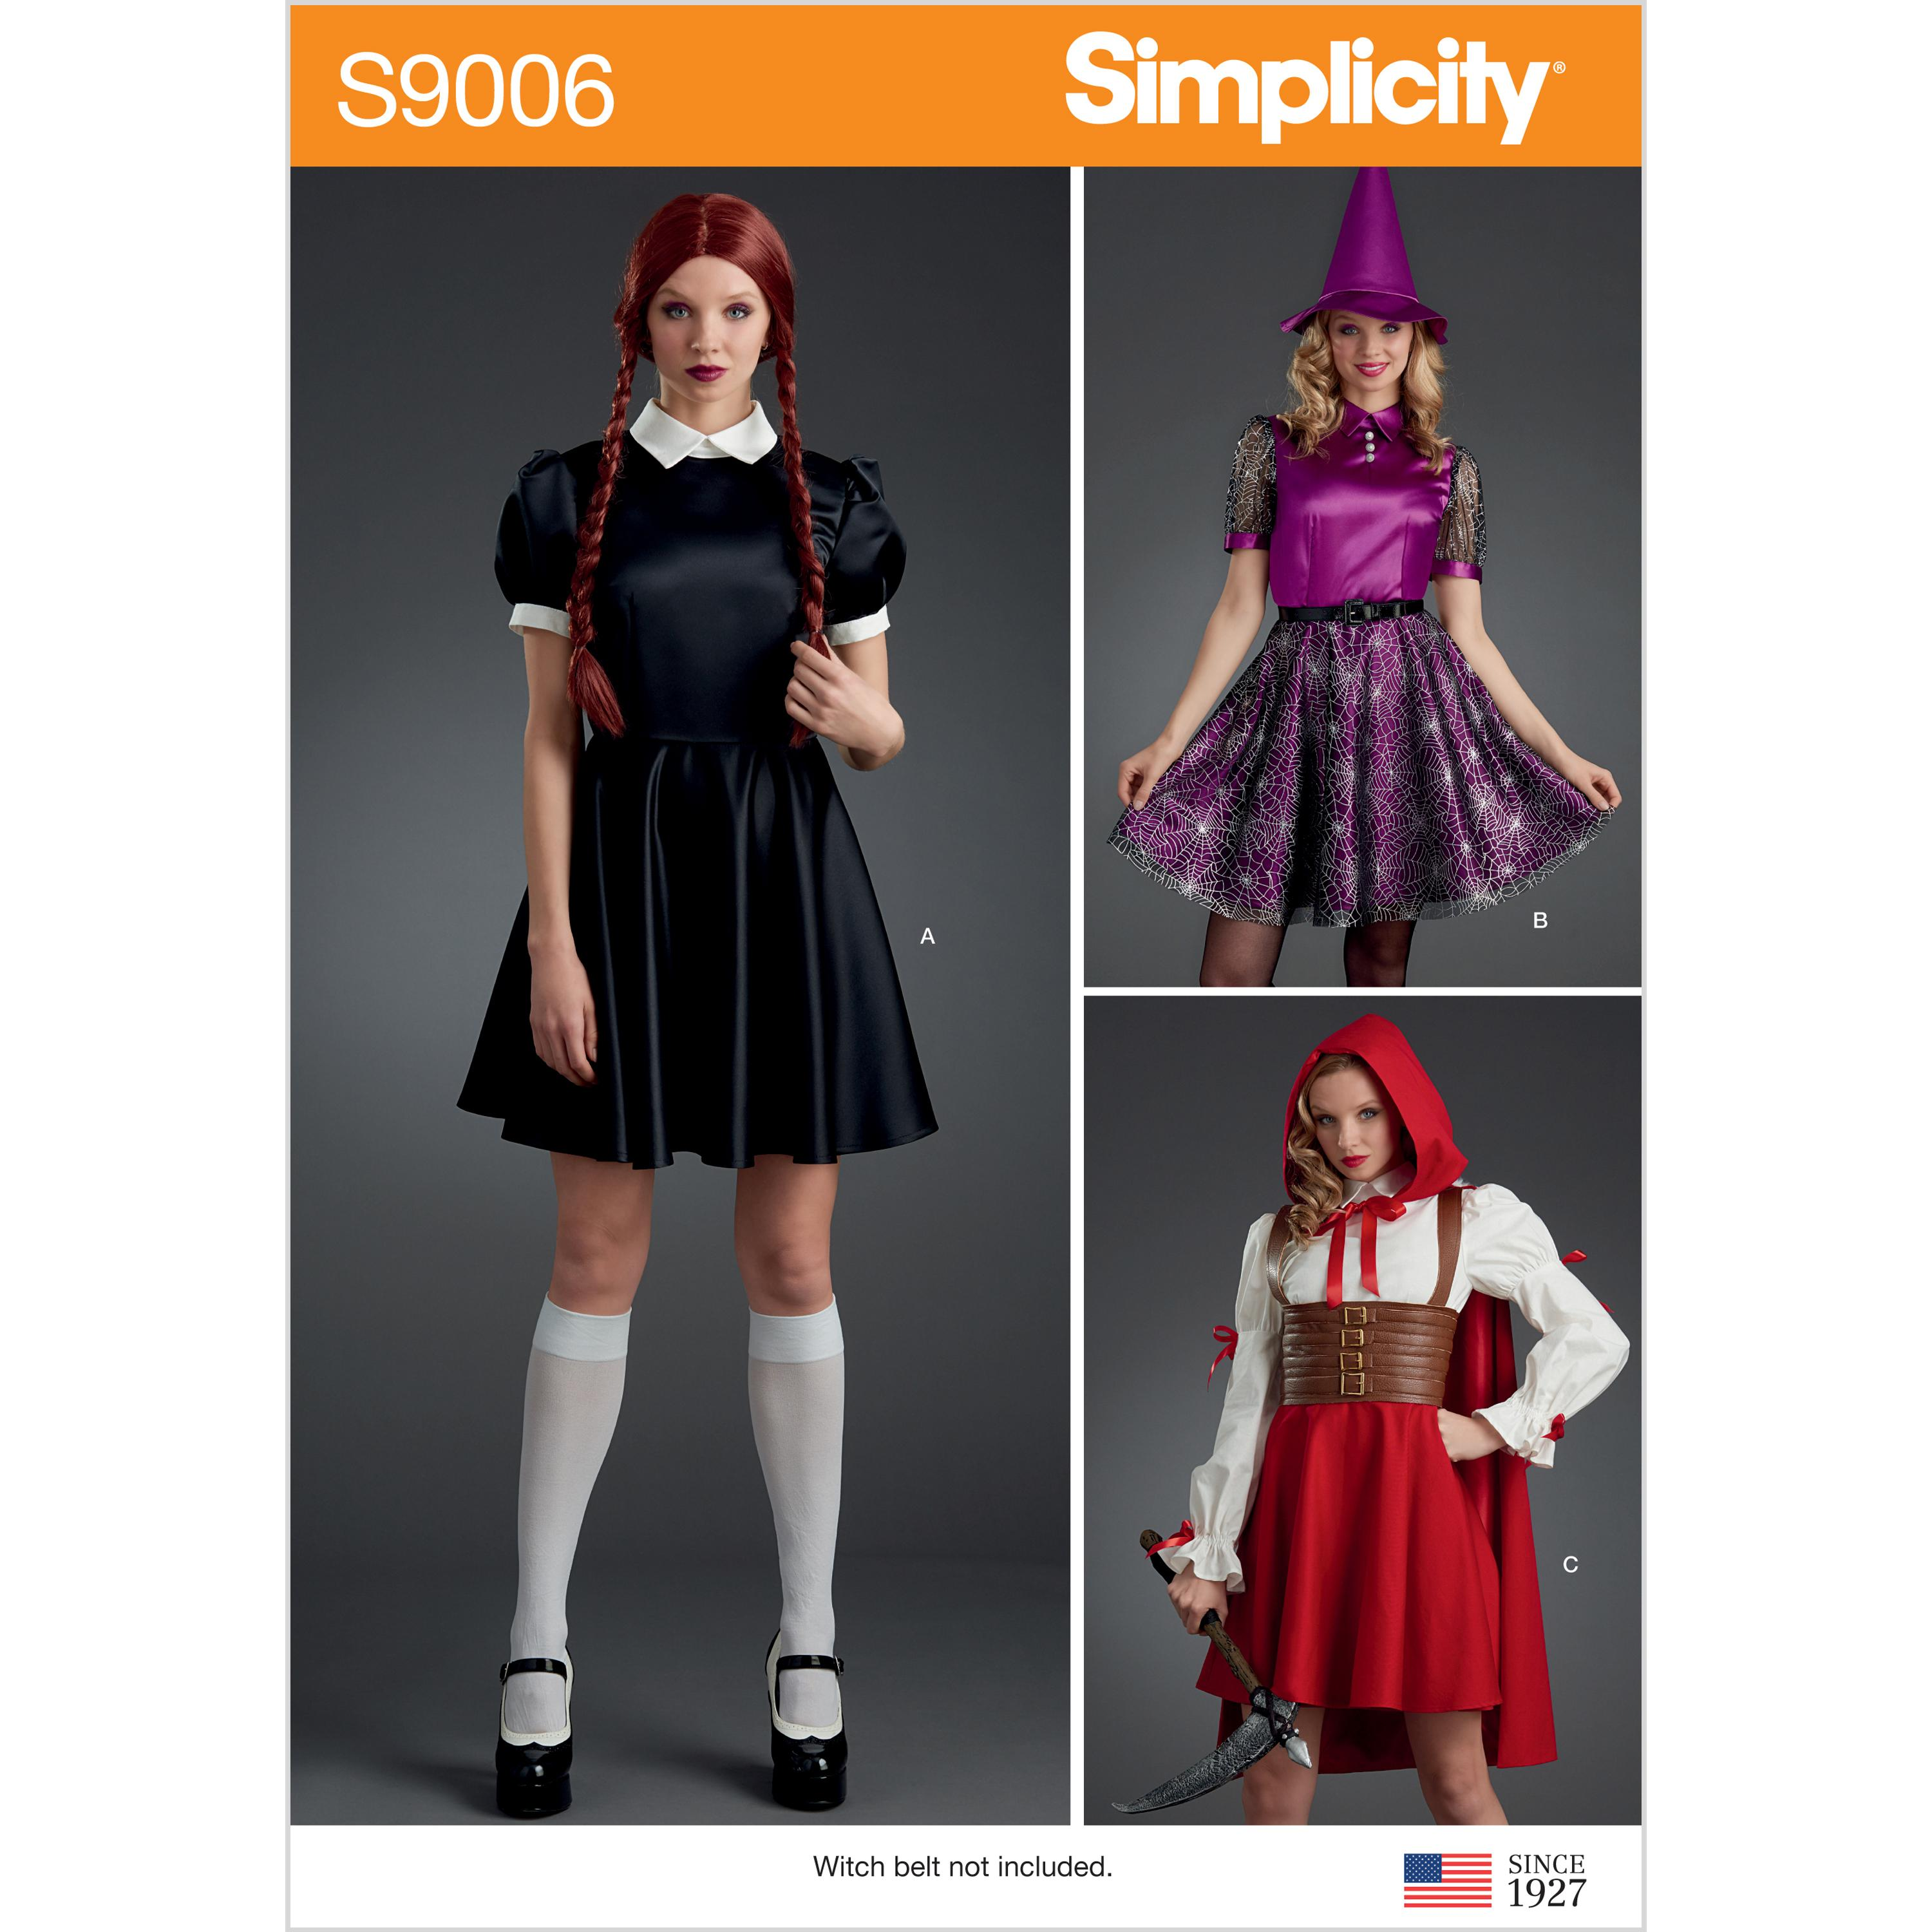 Simplicity S9006 Misses' Halloween Costumes